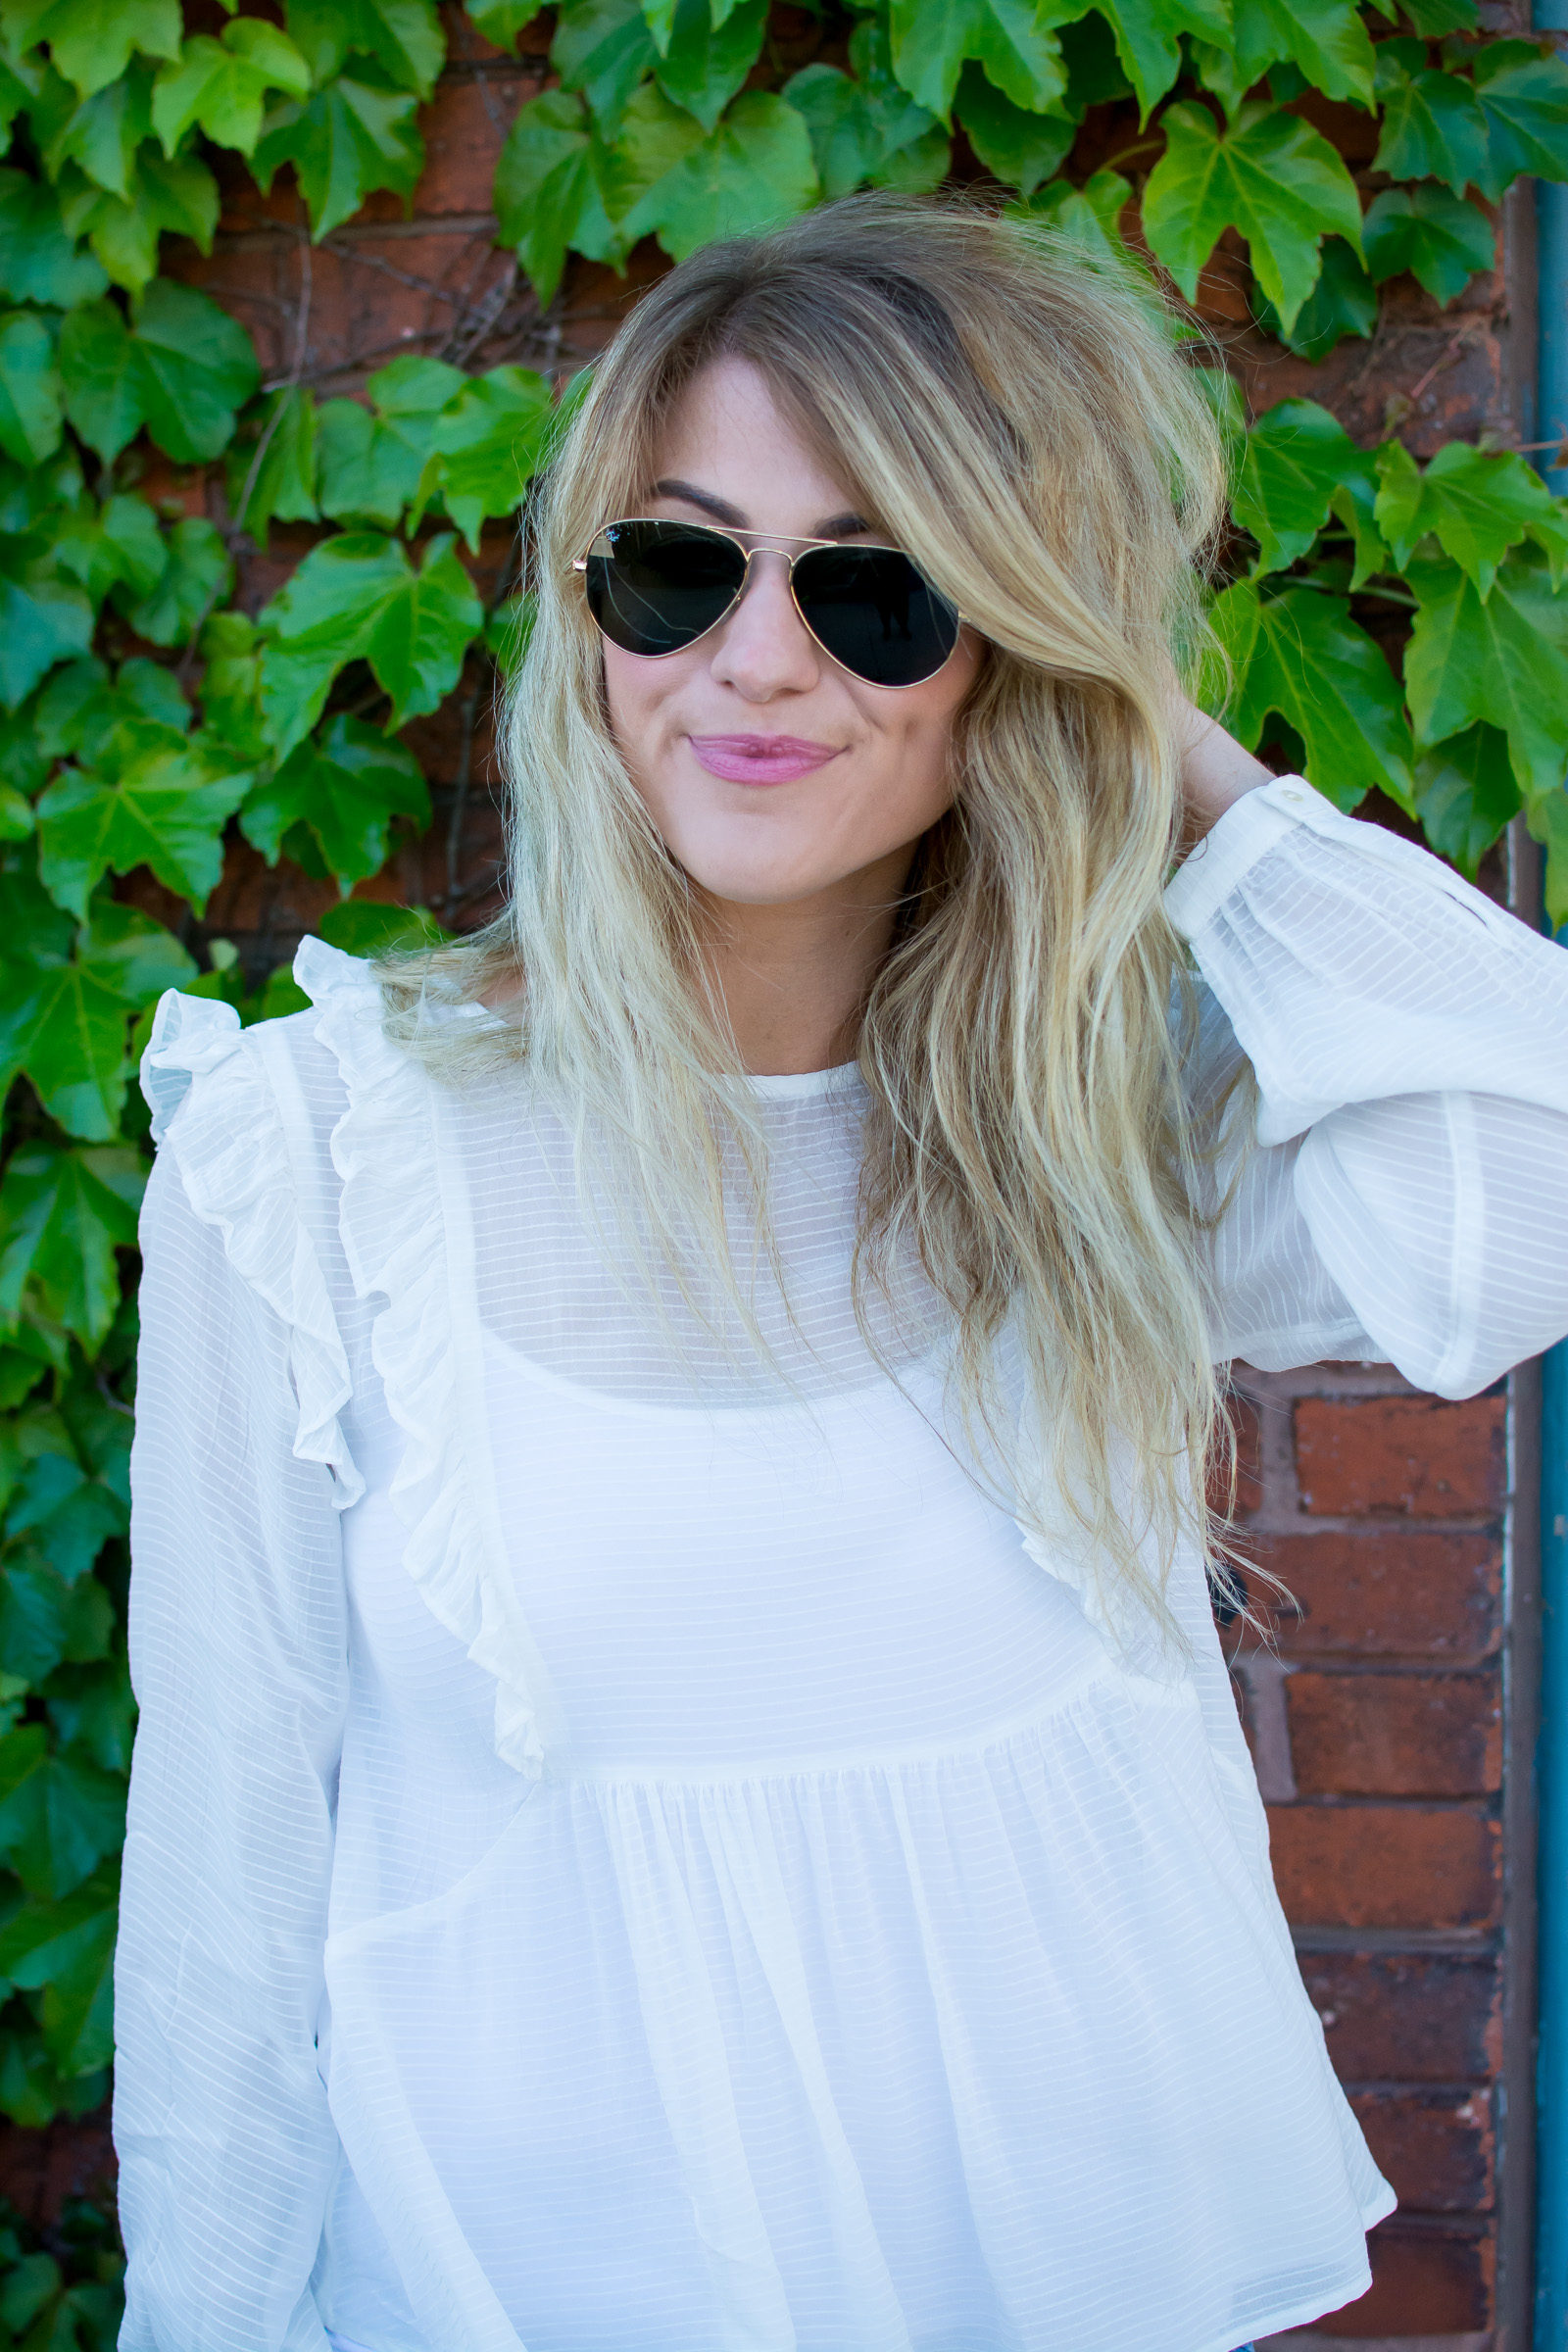 Breezy Ruffled Blouse. | Ashley from Le Stylo Rouge